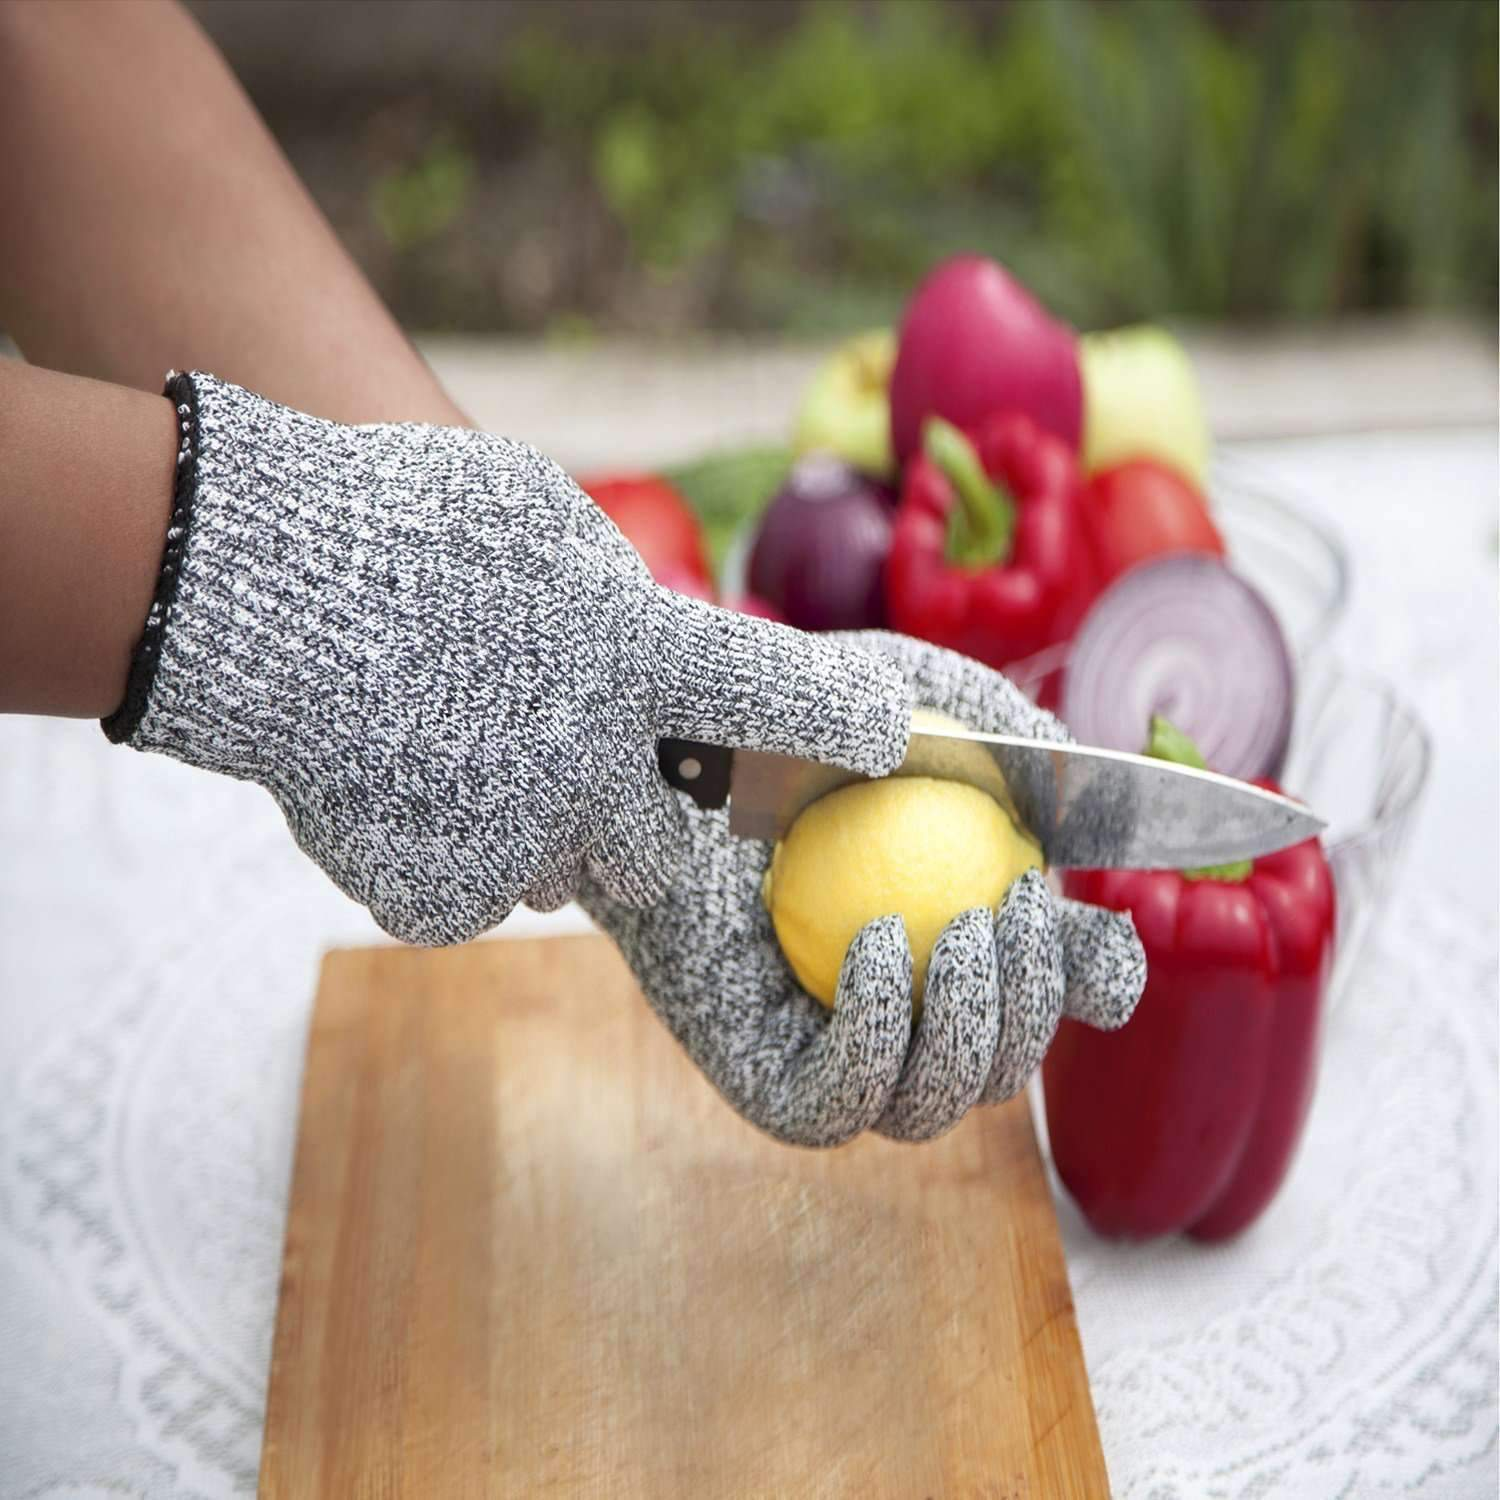 safurance resistant gloves kitchen cut food protection high performanc